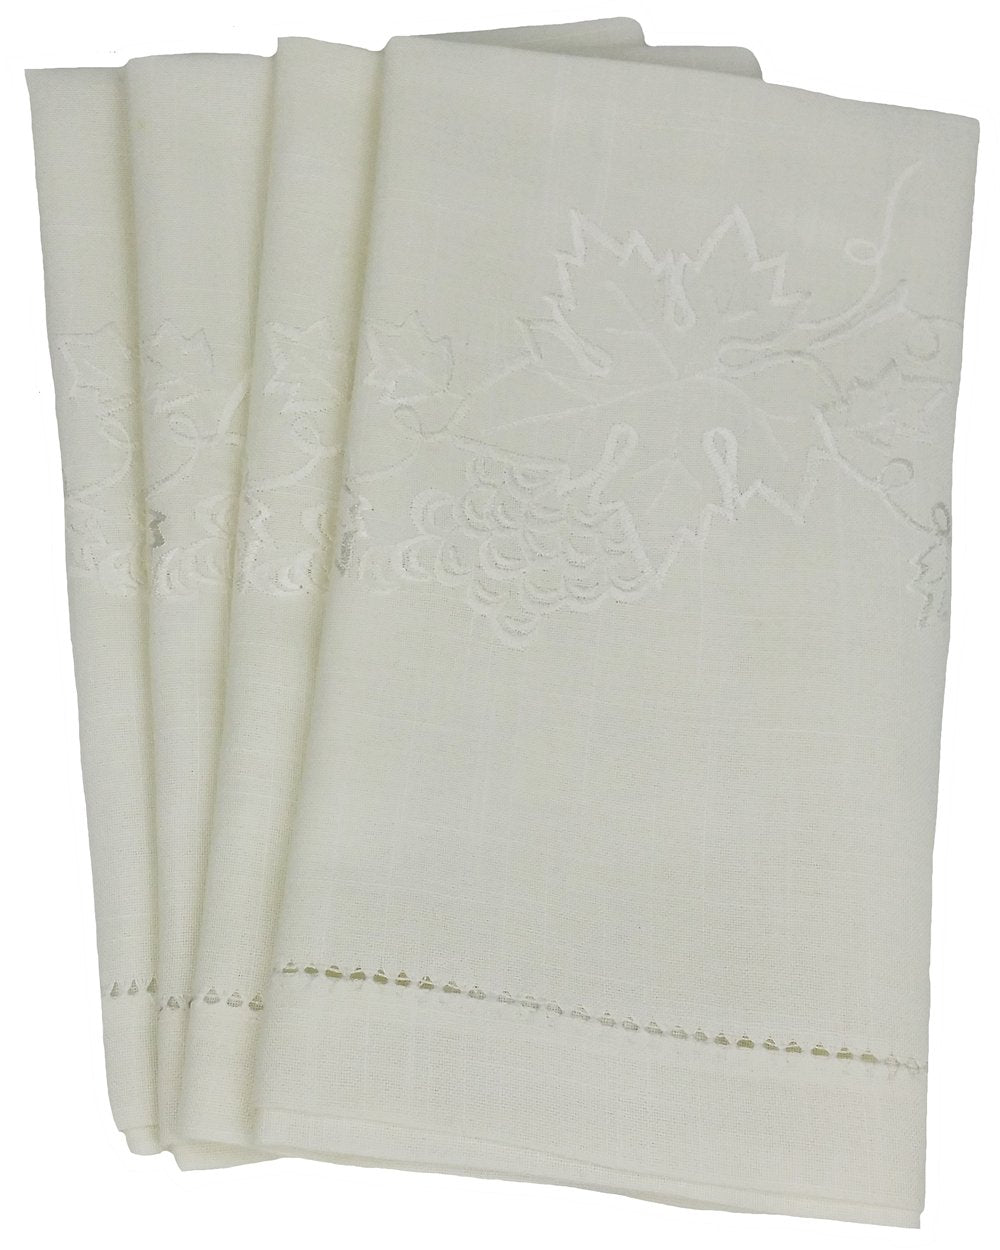 "RA05151 Grapes and Leaves Tea Towel, 14""x22"", Set of 4"